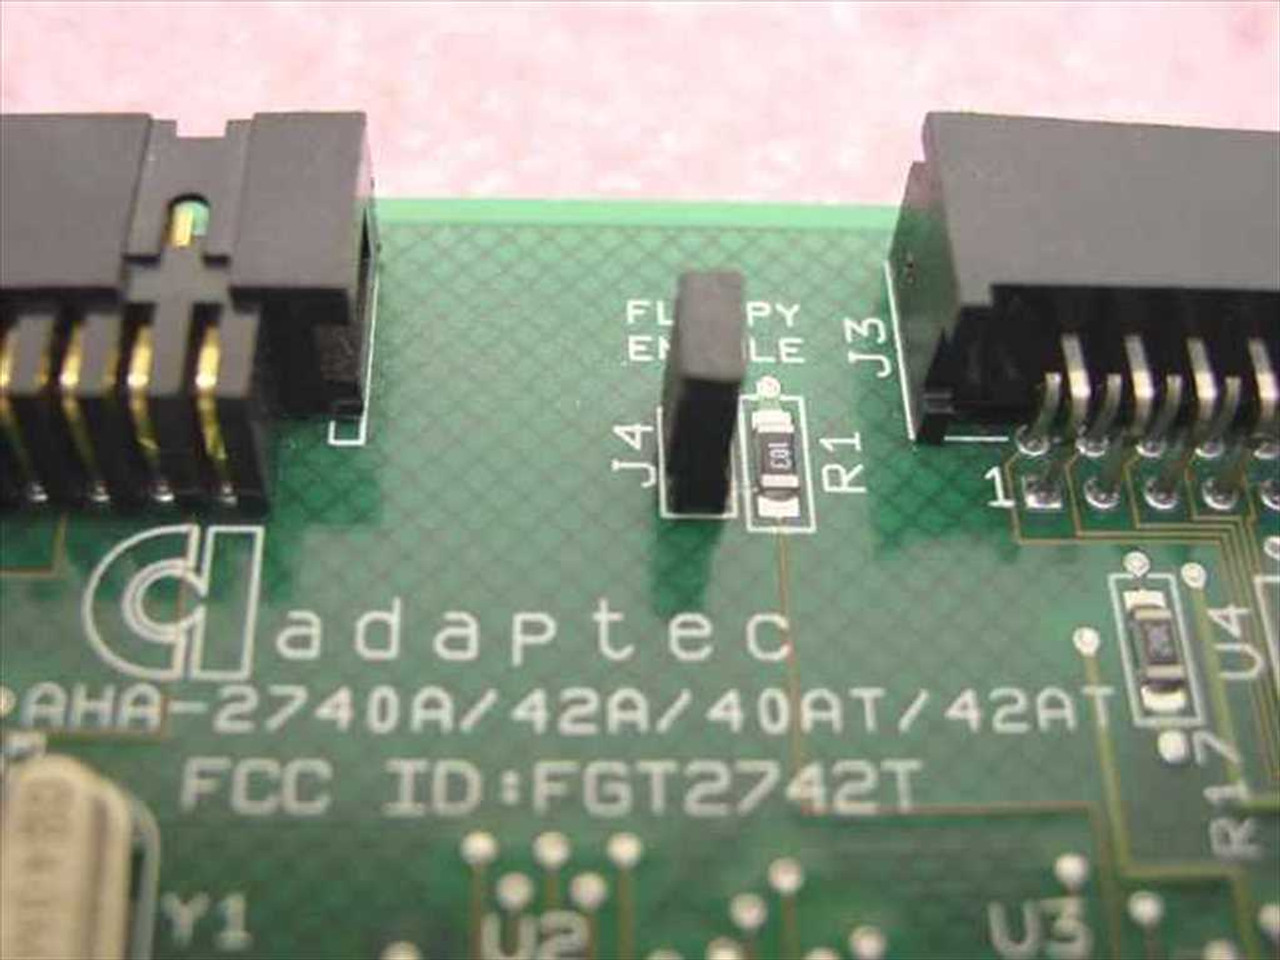 Adaptec 42at Drivers for PC